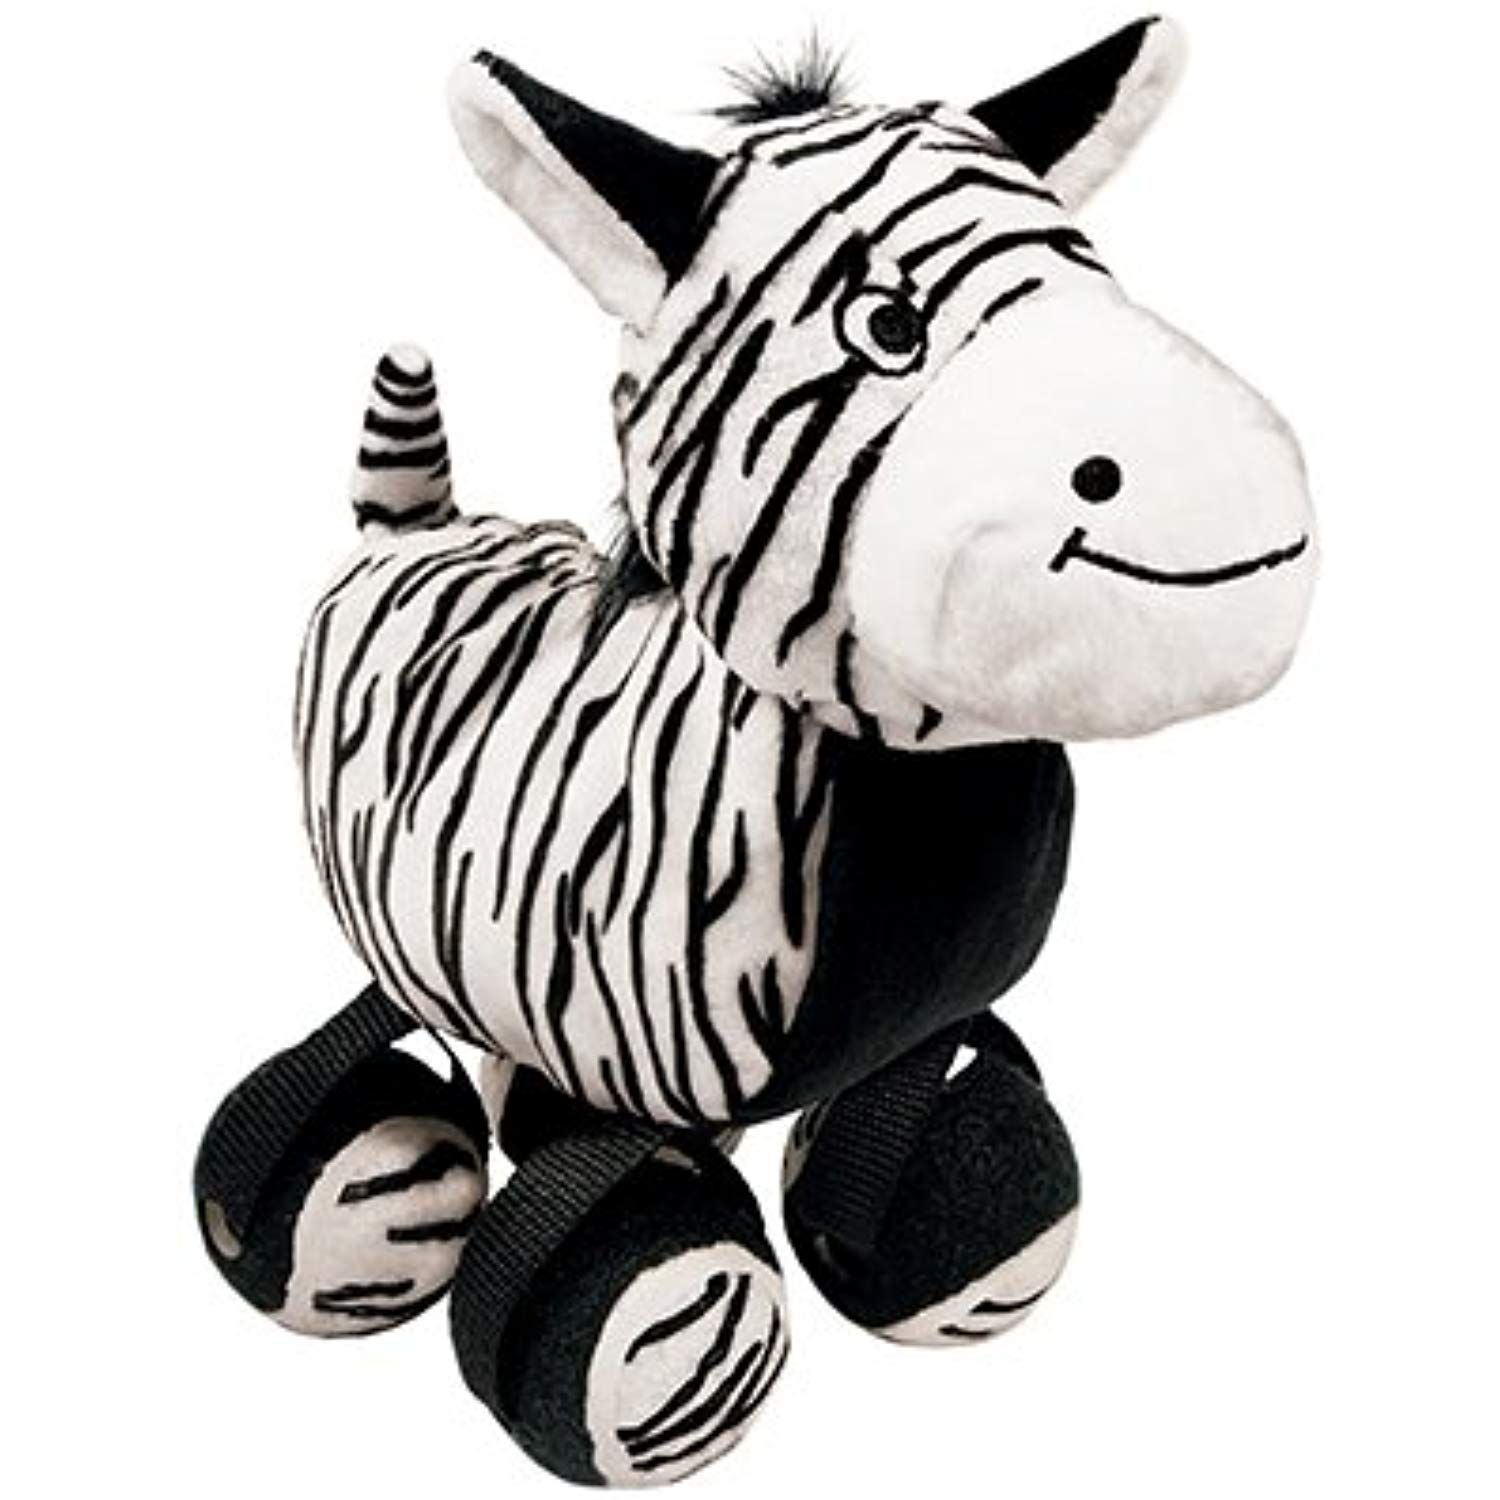 Kong Tennis Shoes Zebra Dog Toy Large Check Out The Image By